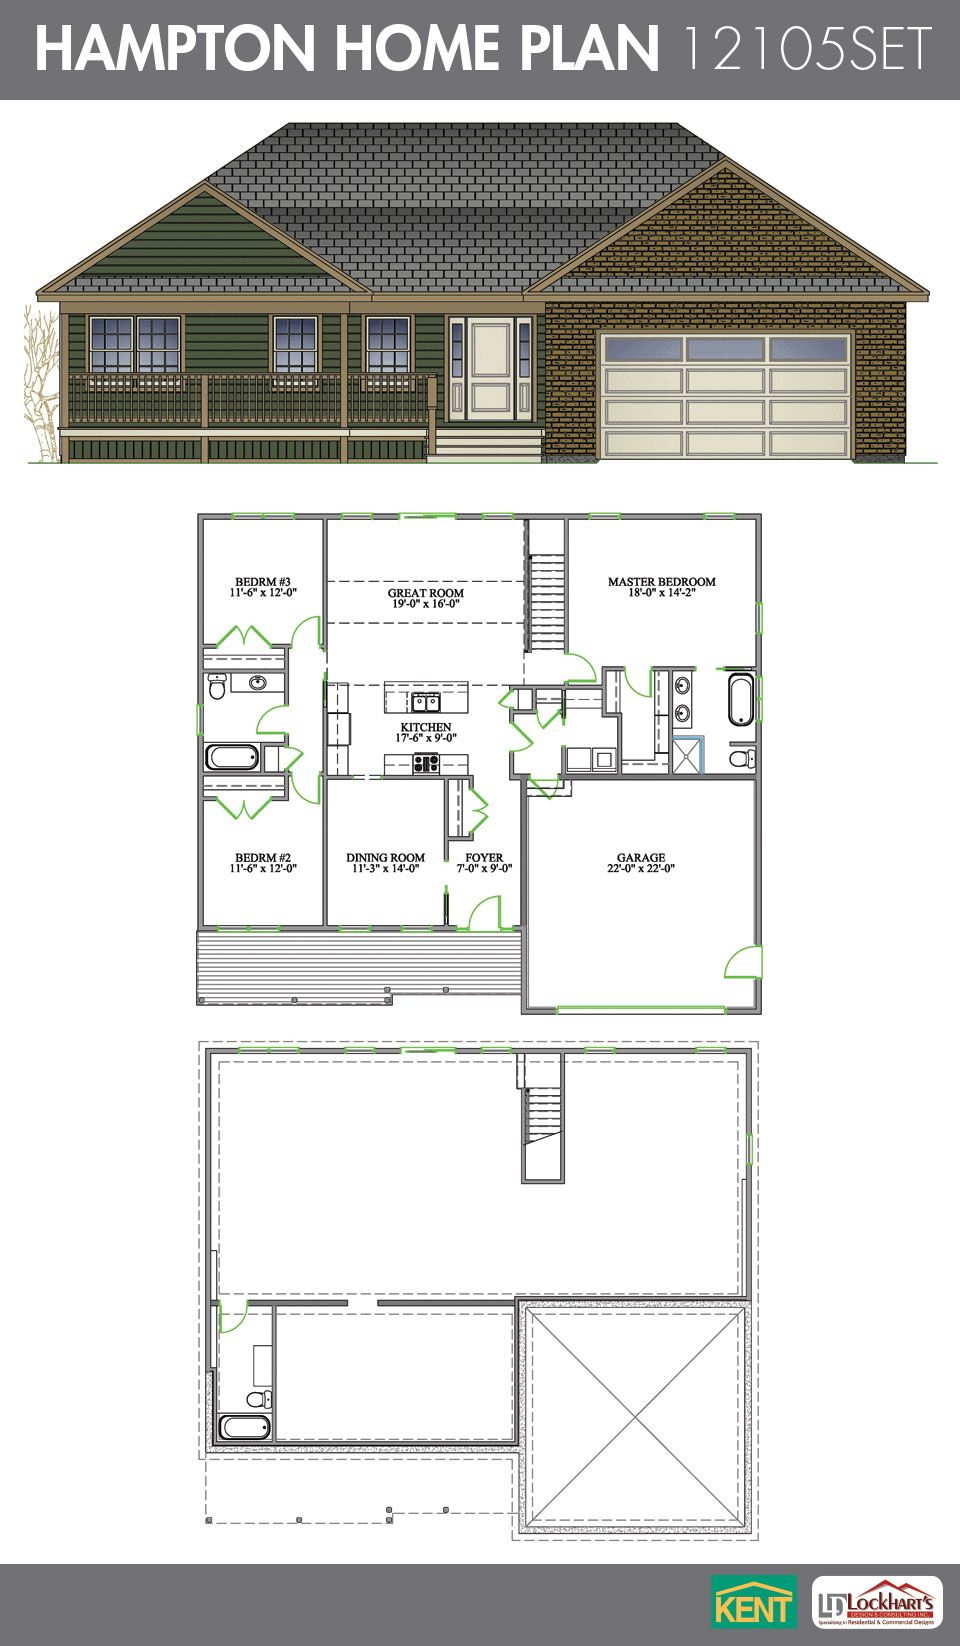 Hampton 3 Bedroom Bath Ranch Style Home Plan Features Open Concept Great PlansRanch HomesFormal Dining RoomsVaulted